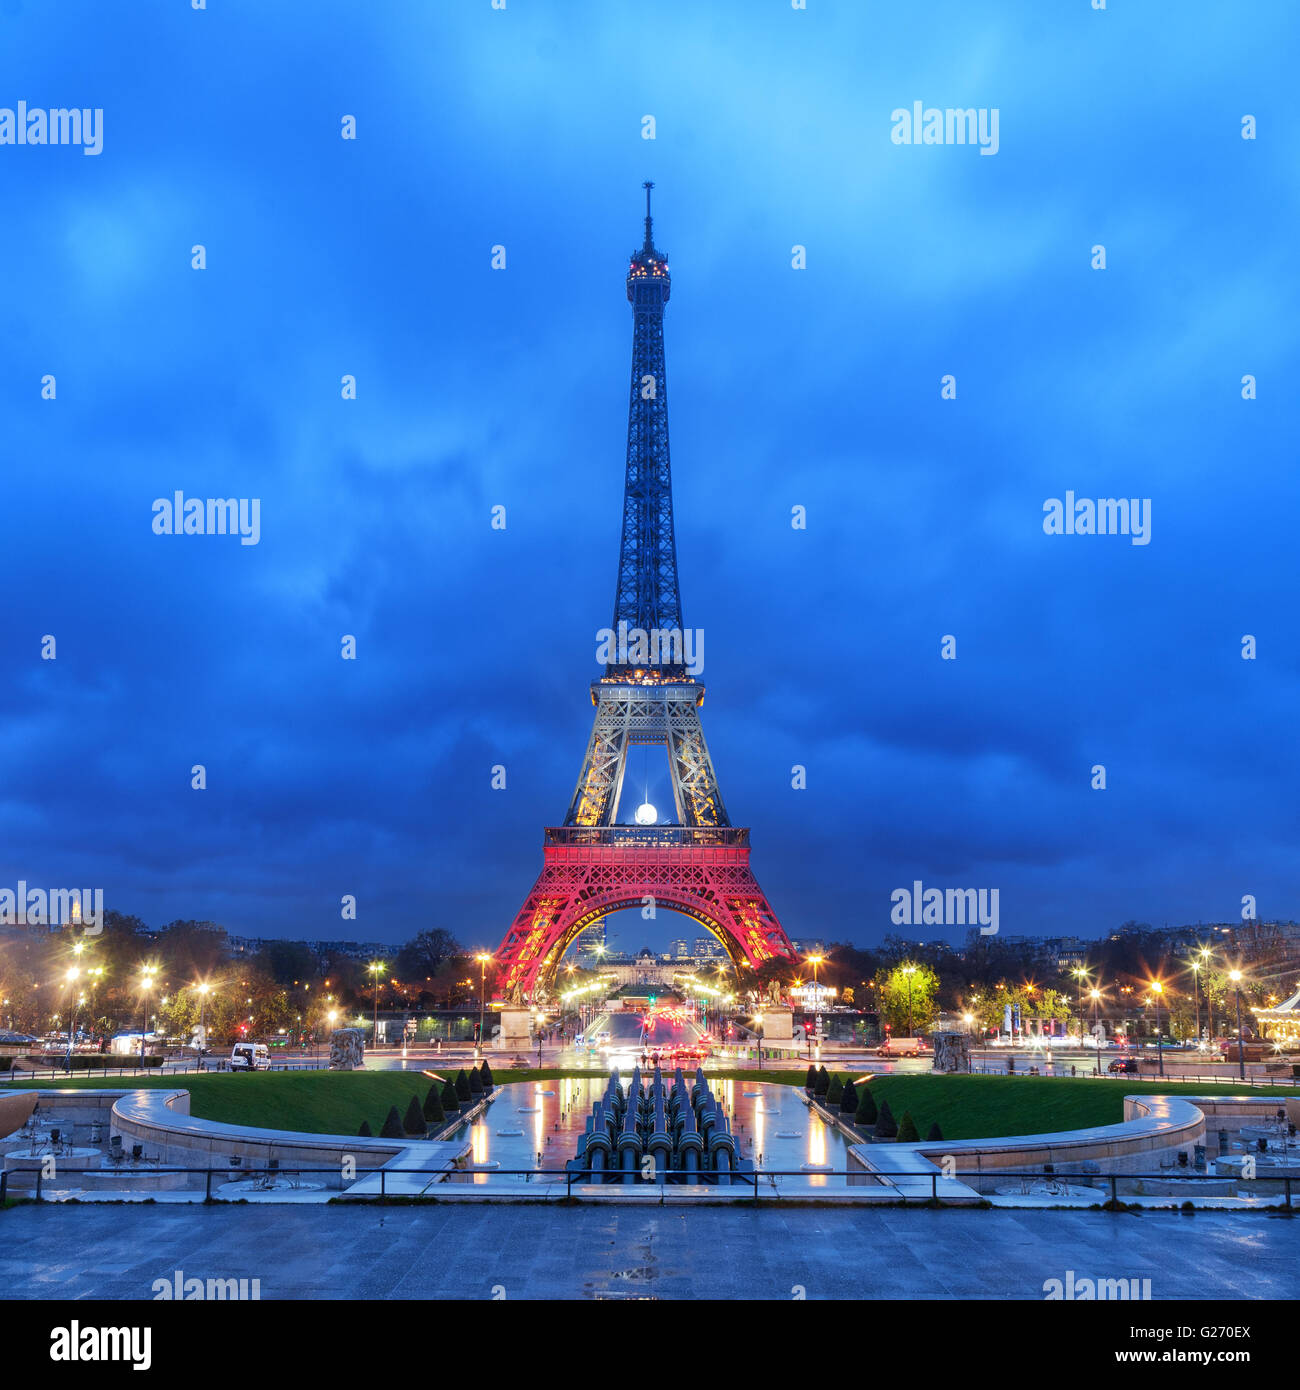 PARIS, FRANCE - NOVEMBER 20, 2015: Eiffel tower illuminated with colors of French national flag after November 13 - Stock Image